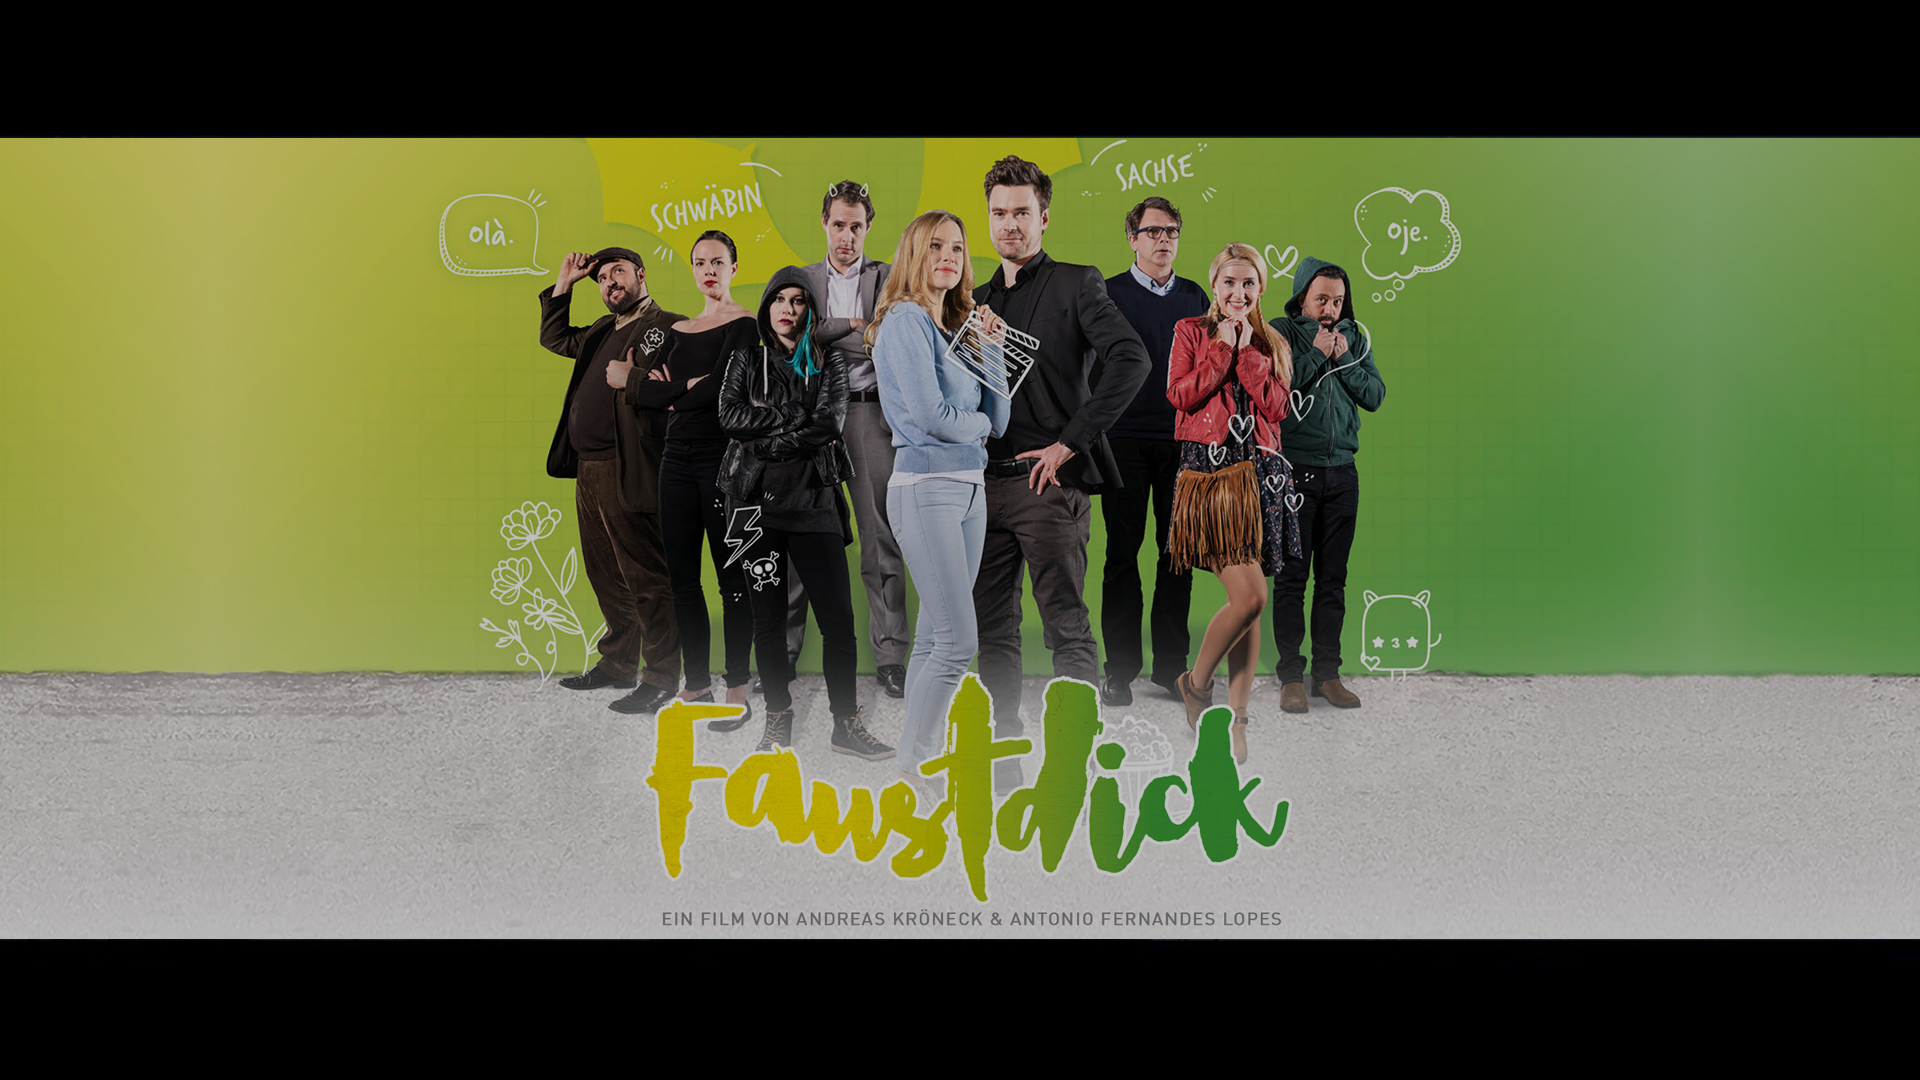 Faustdick | Feature Film